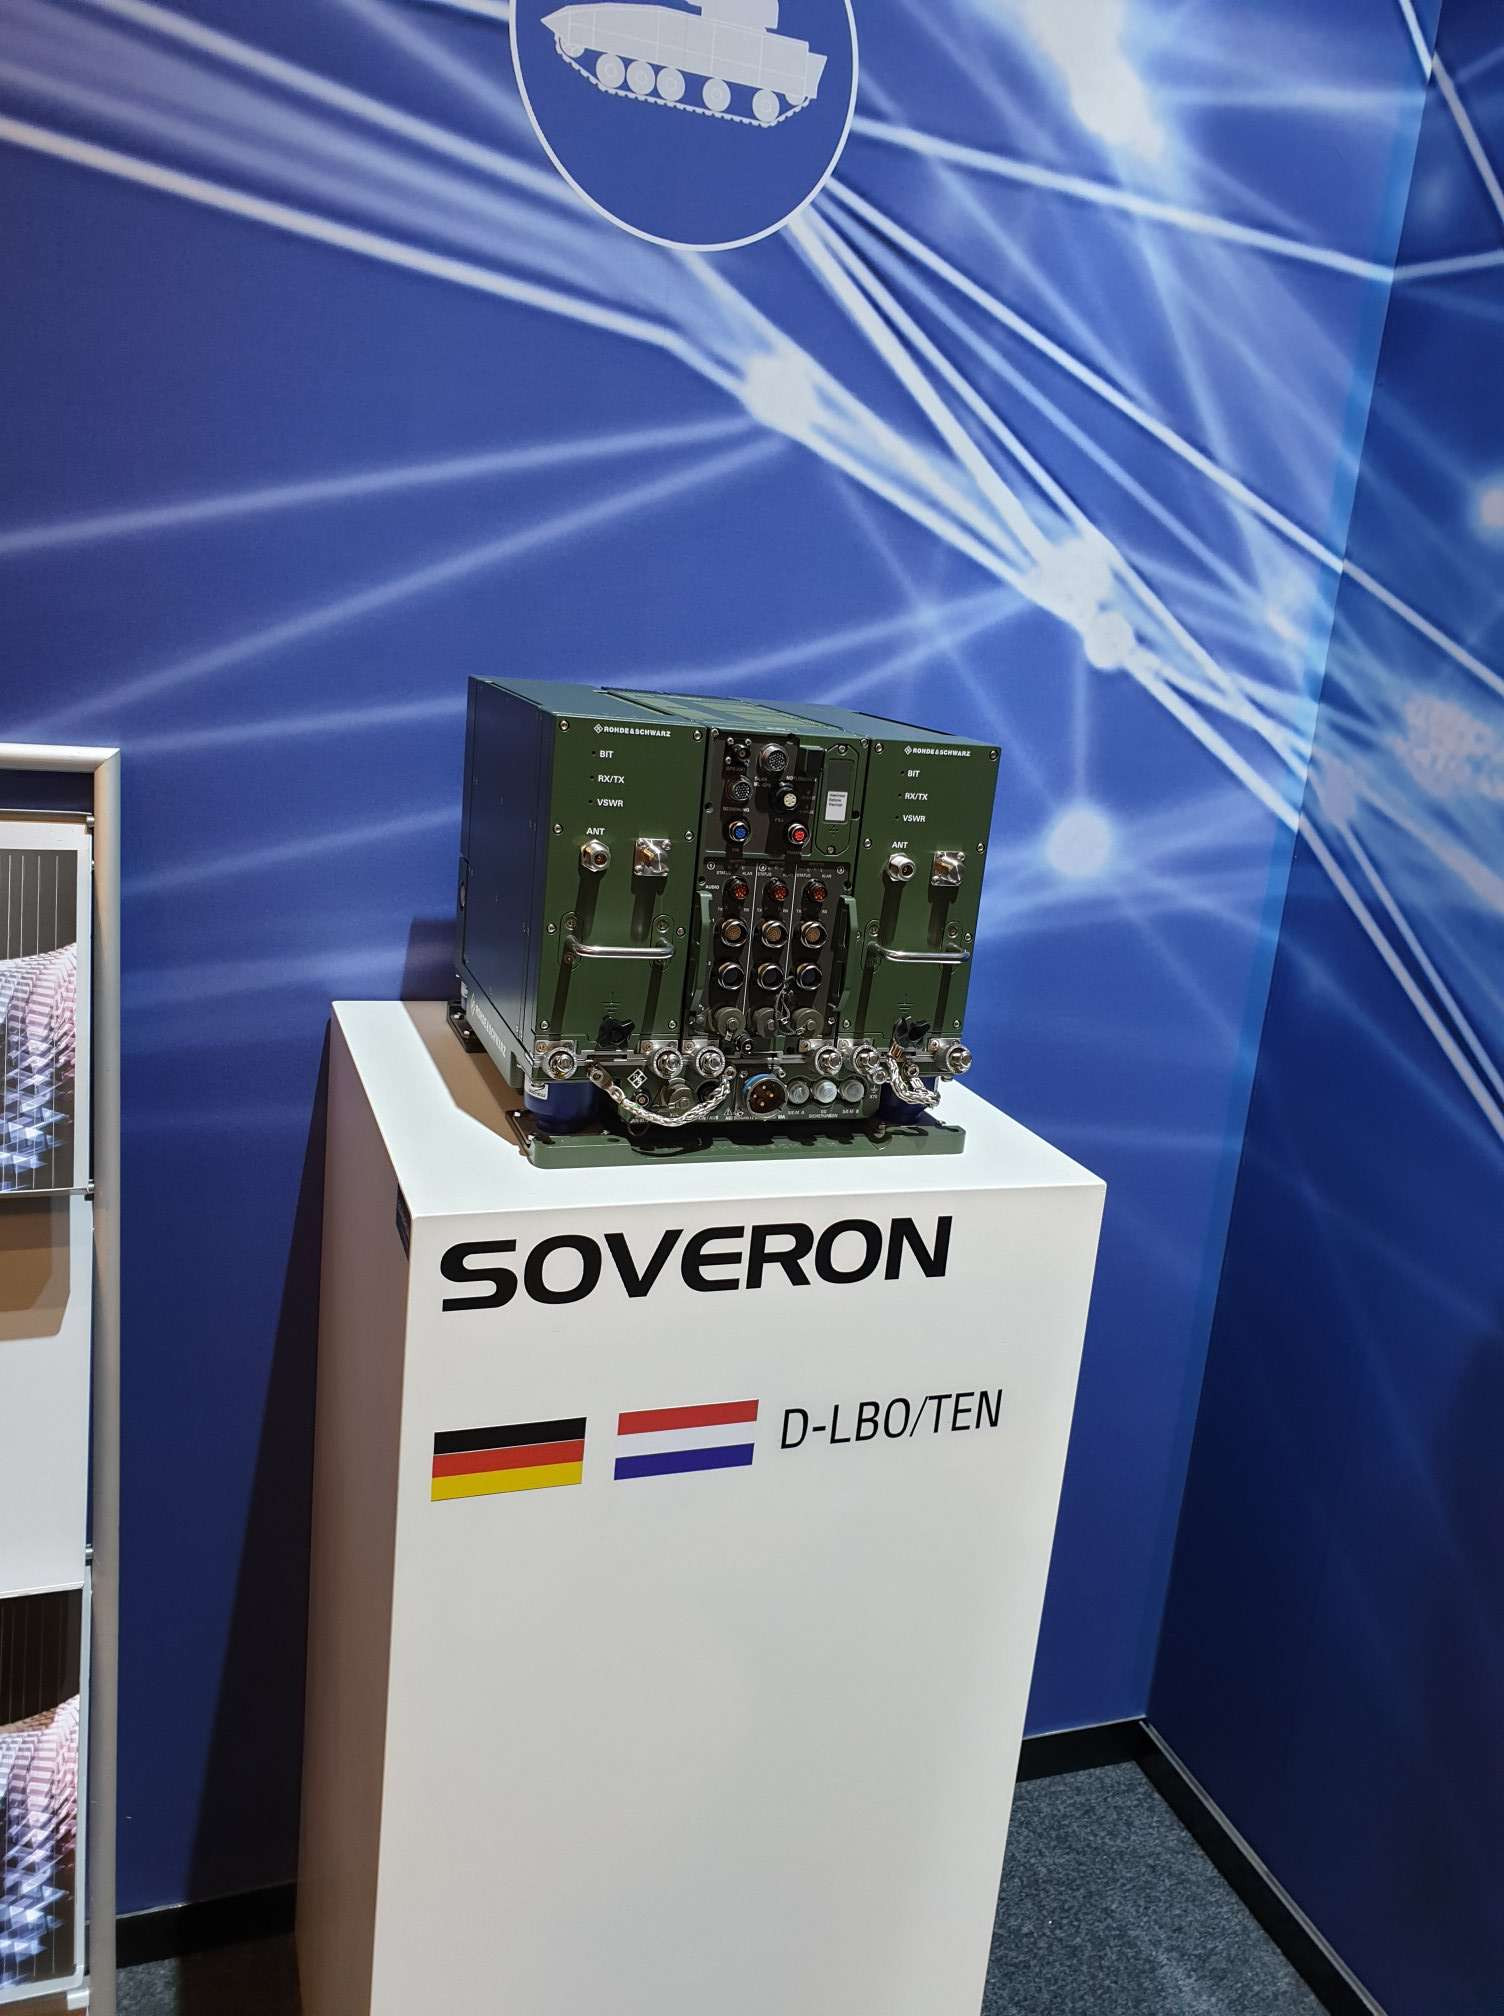 SOVERON Rohde Schwarz Tactical Radio DSEI 2019 London